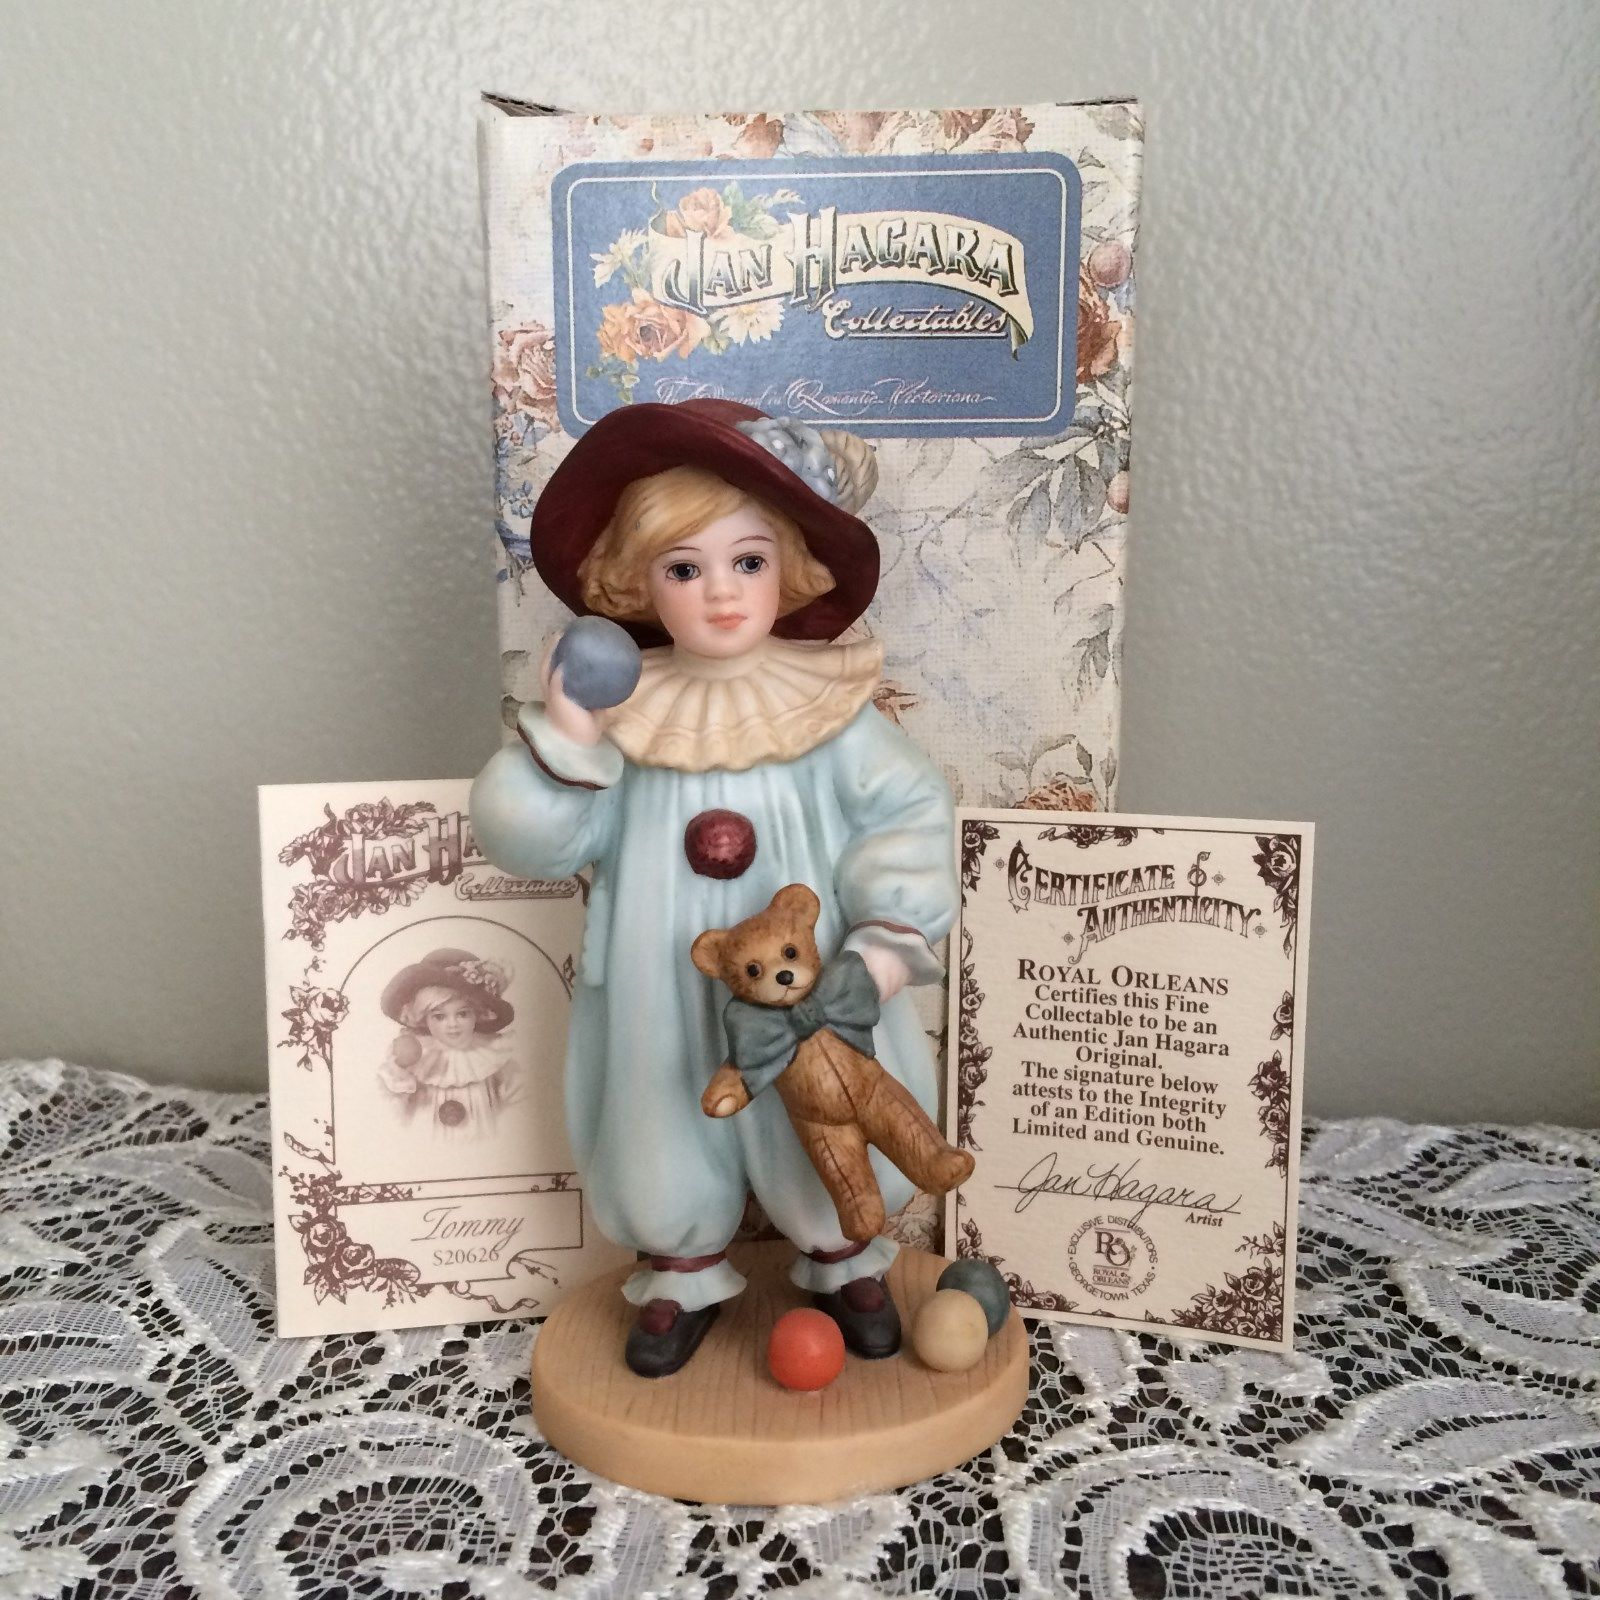 Jan Hagara Figurines For Sale: Jan Hagara Collectible Porcelain Figurine TOMMY Dressed As